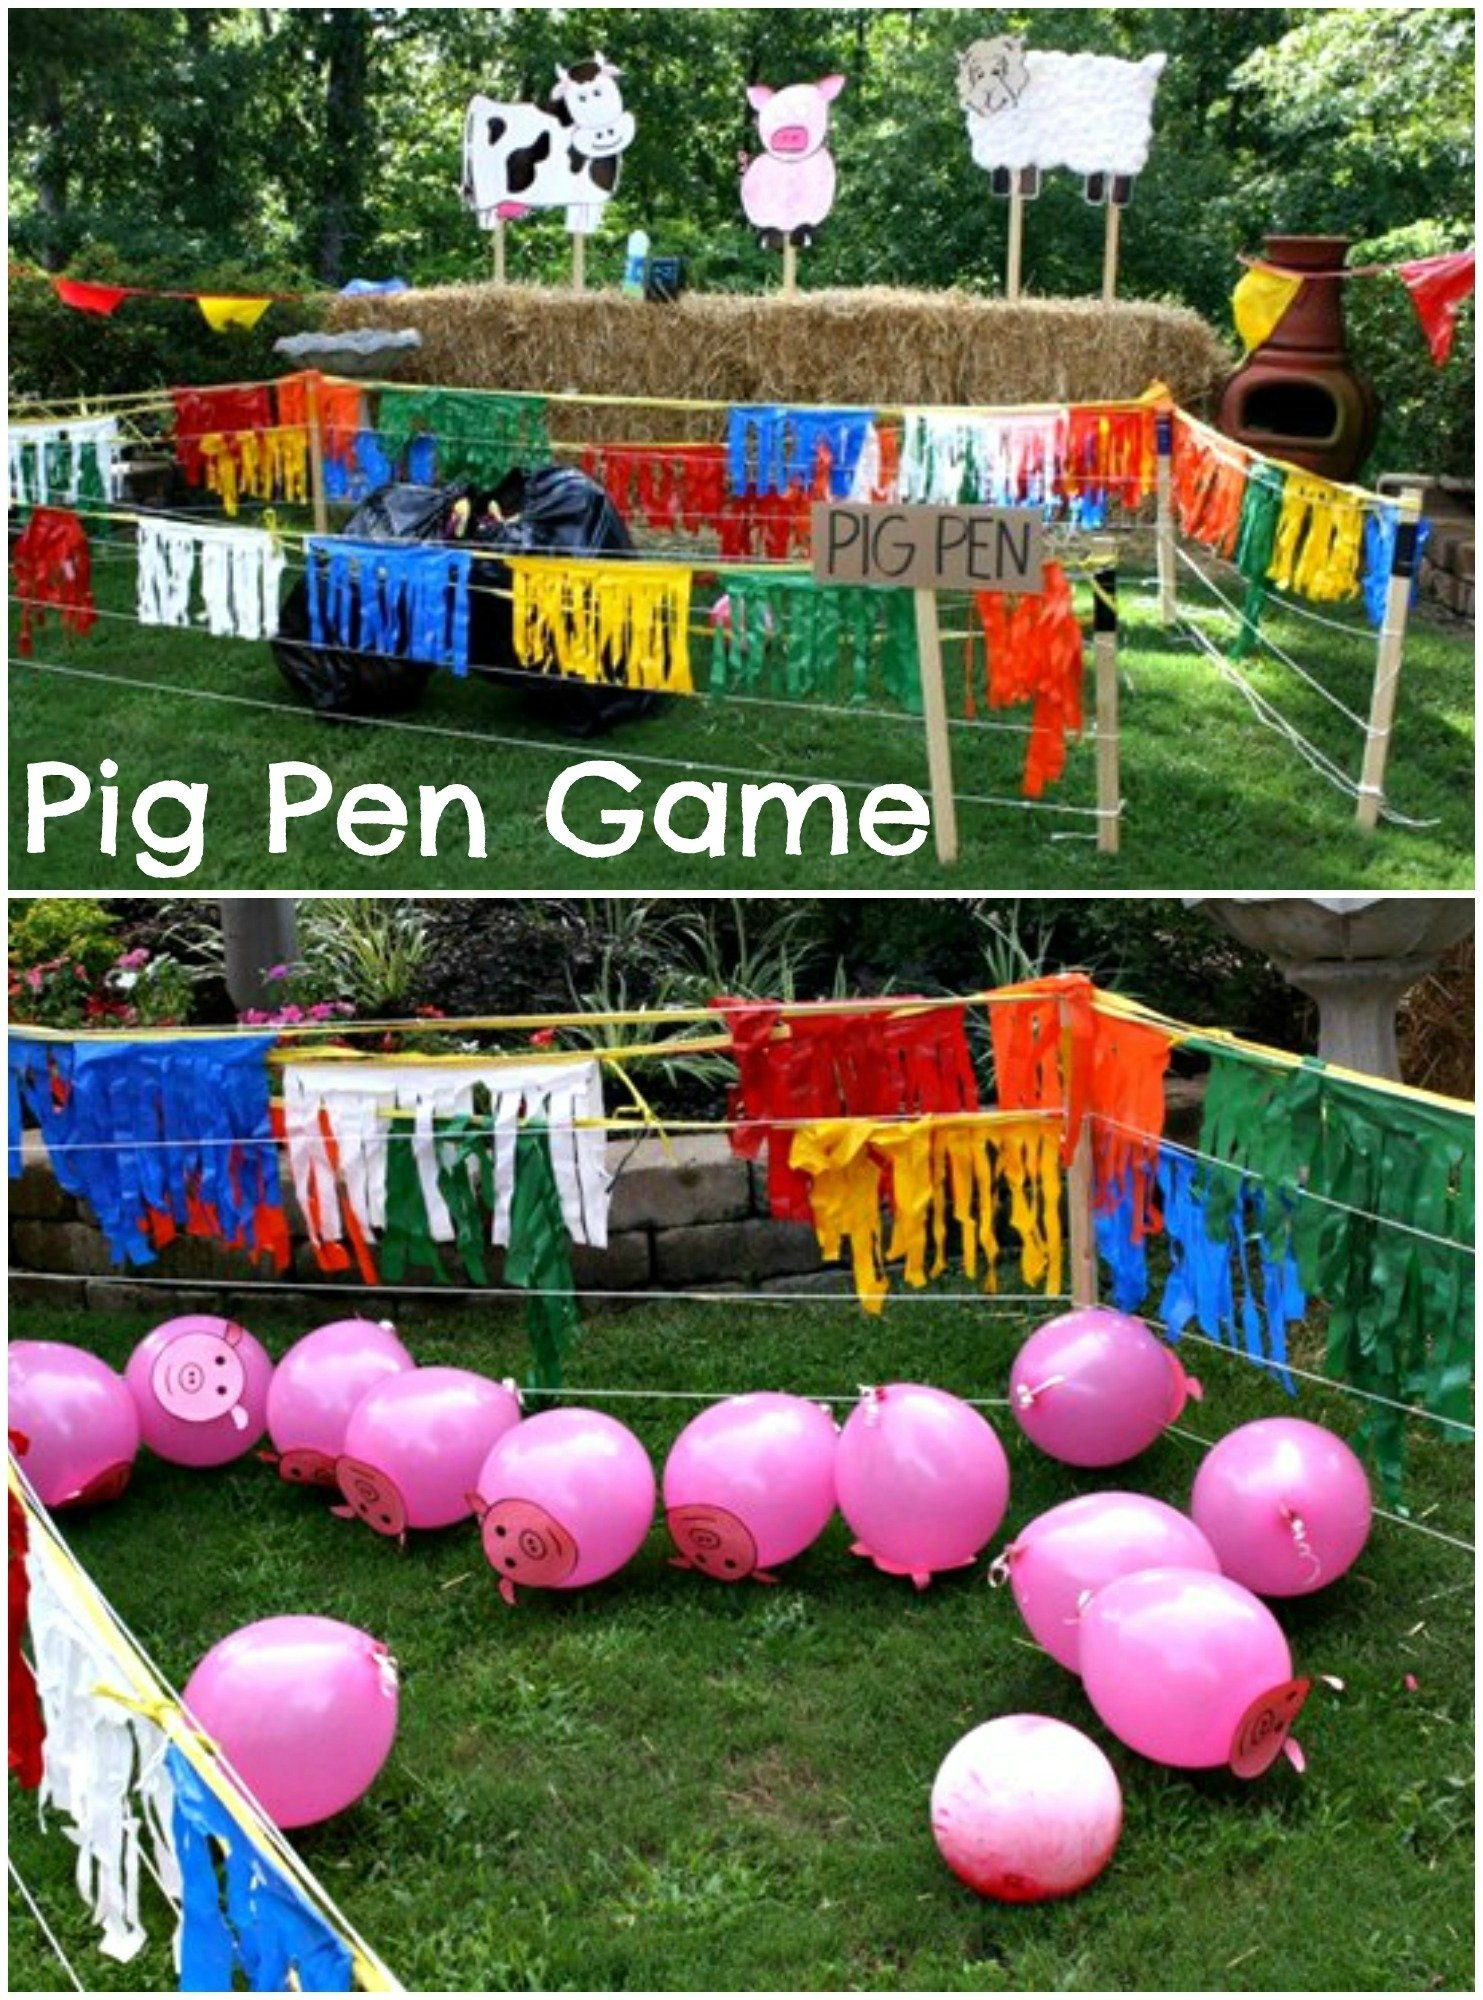 10 Stylish Birthday Ideas For 17 Year Old Boy backyard birthday party ideas for boys 17 best images about boys 2020